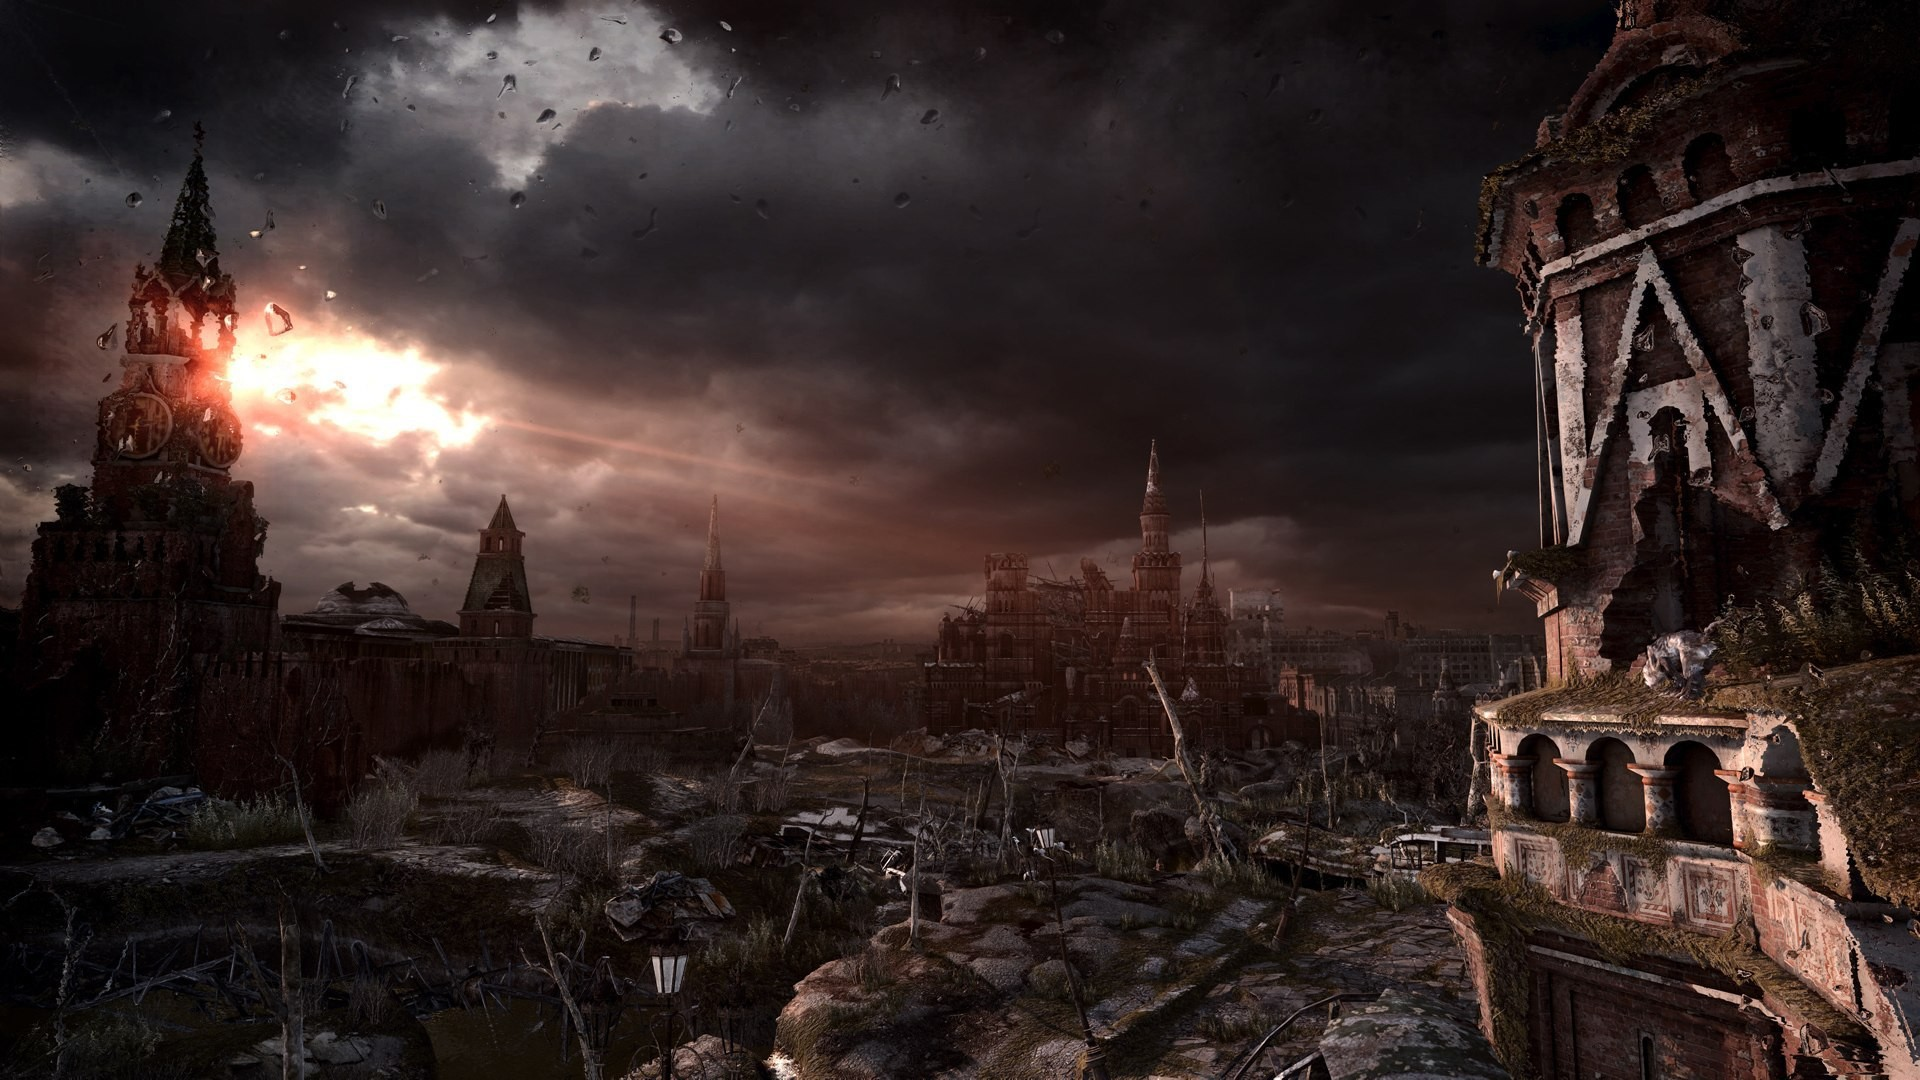 1920x1080 The center of Moscow after the war wallpapers and images - wallpapers,  pictures, photos